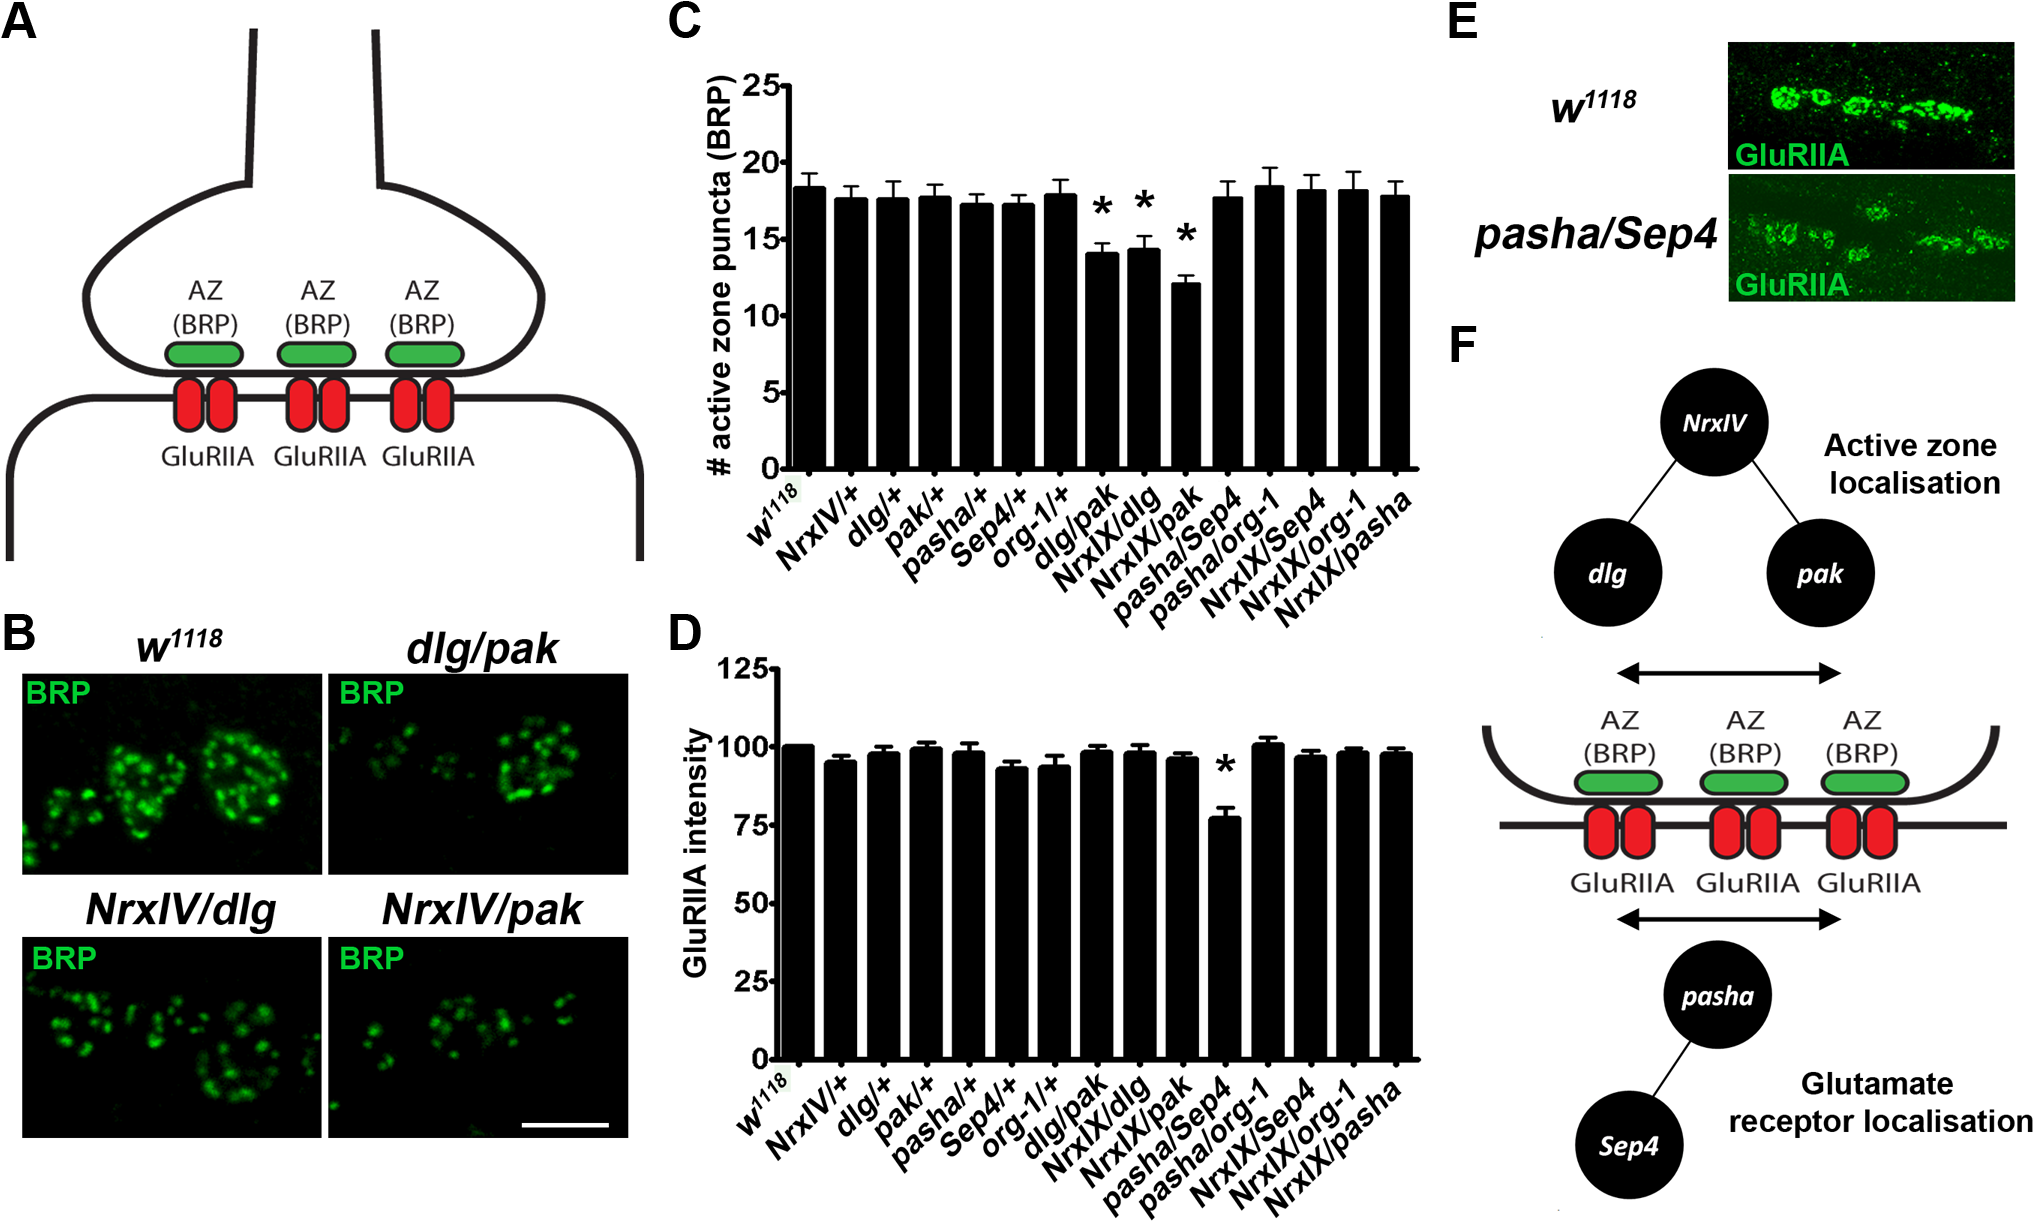 Different genetic interactions effect distinct synaptic defects suggesting that distinct molecular aetiologies underlie ASD.